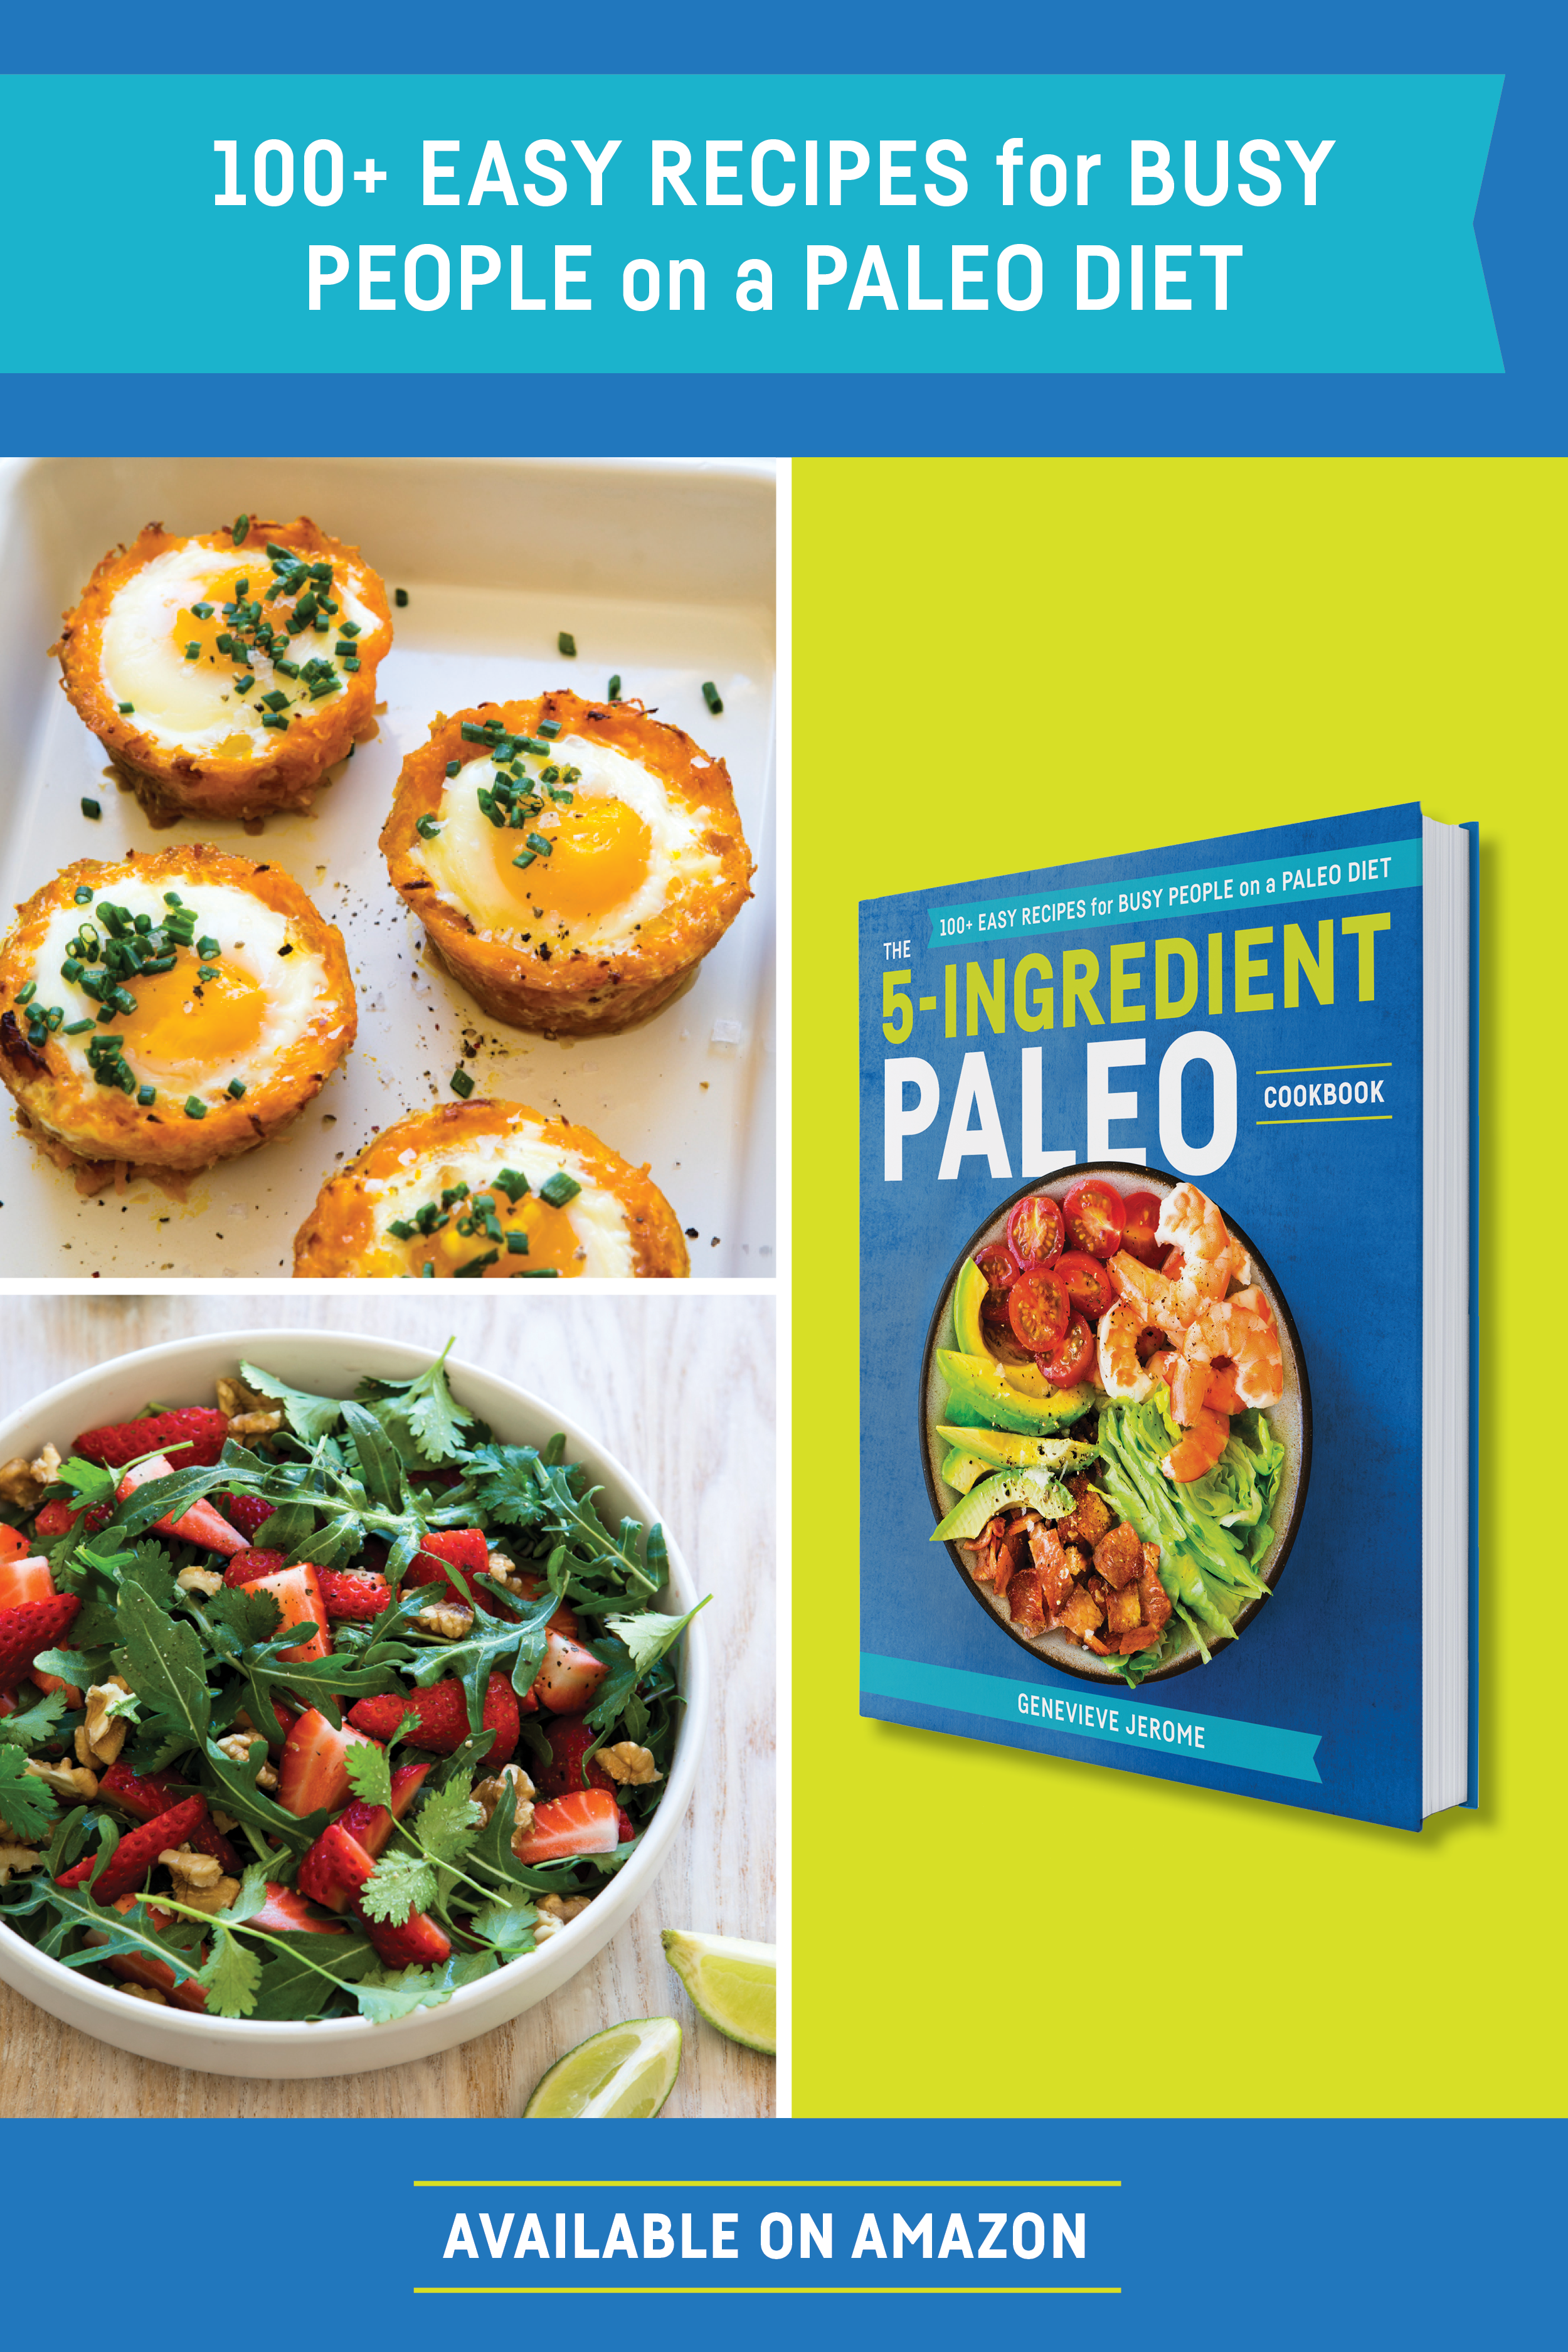 You can Purchase my cookbook here!